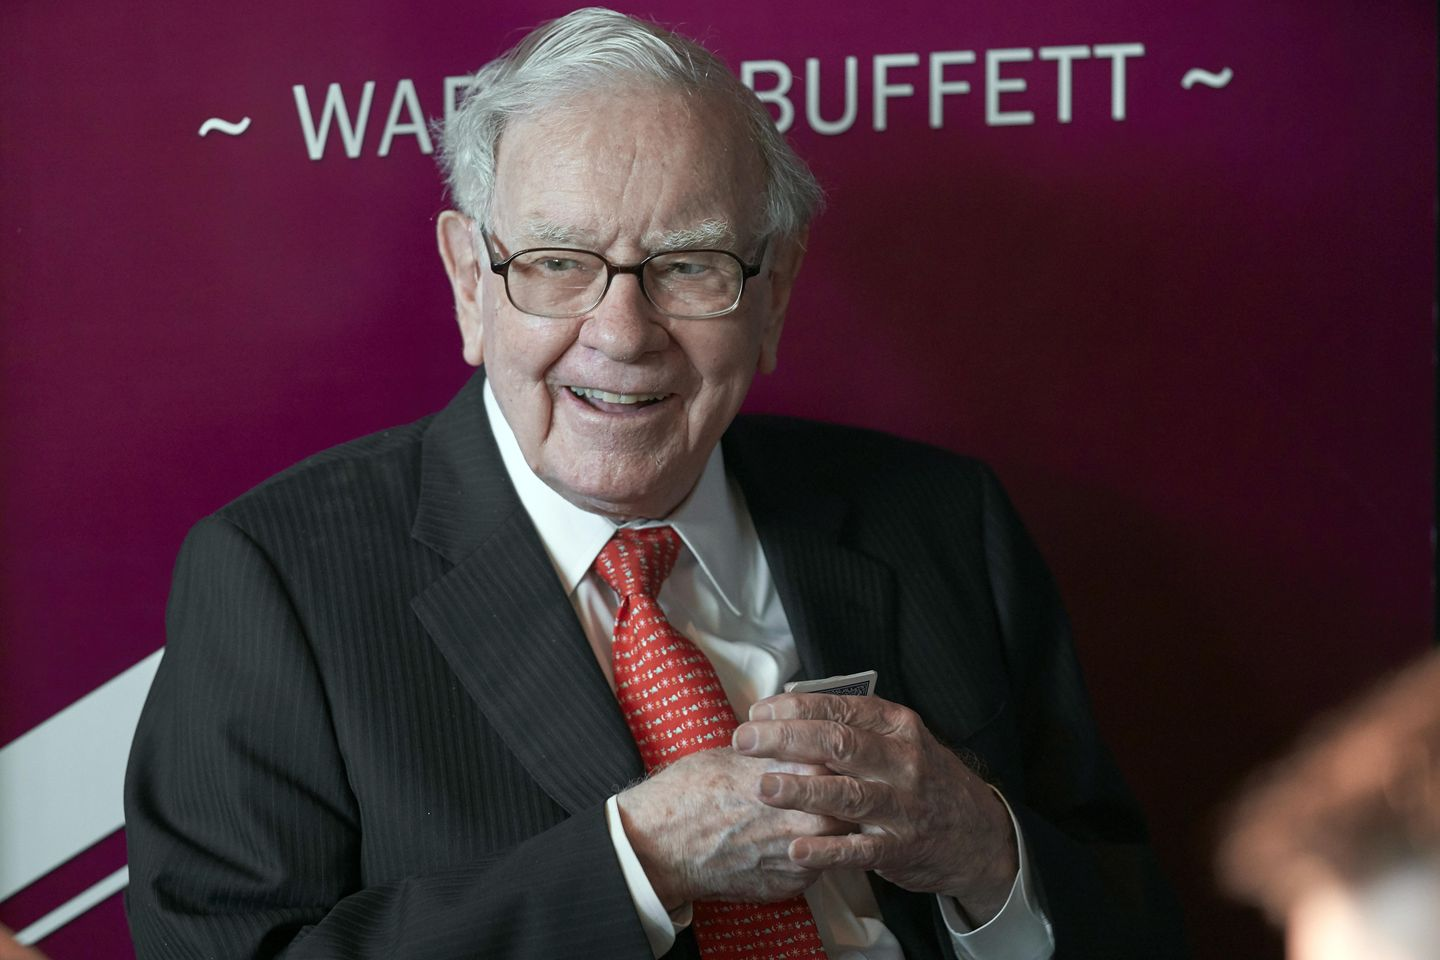 Report: Abel to succeed Buffett as Berkshire Hathaway CEO